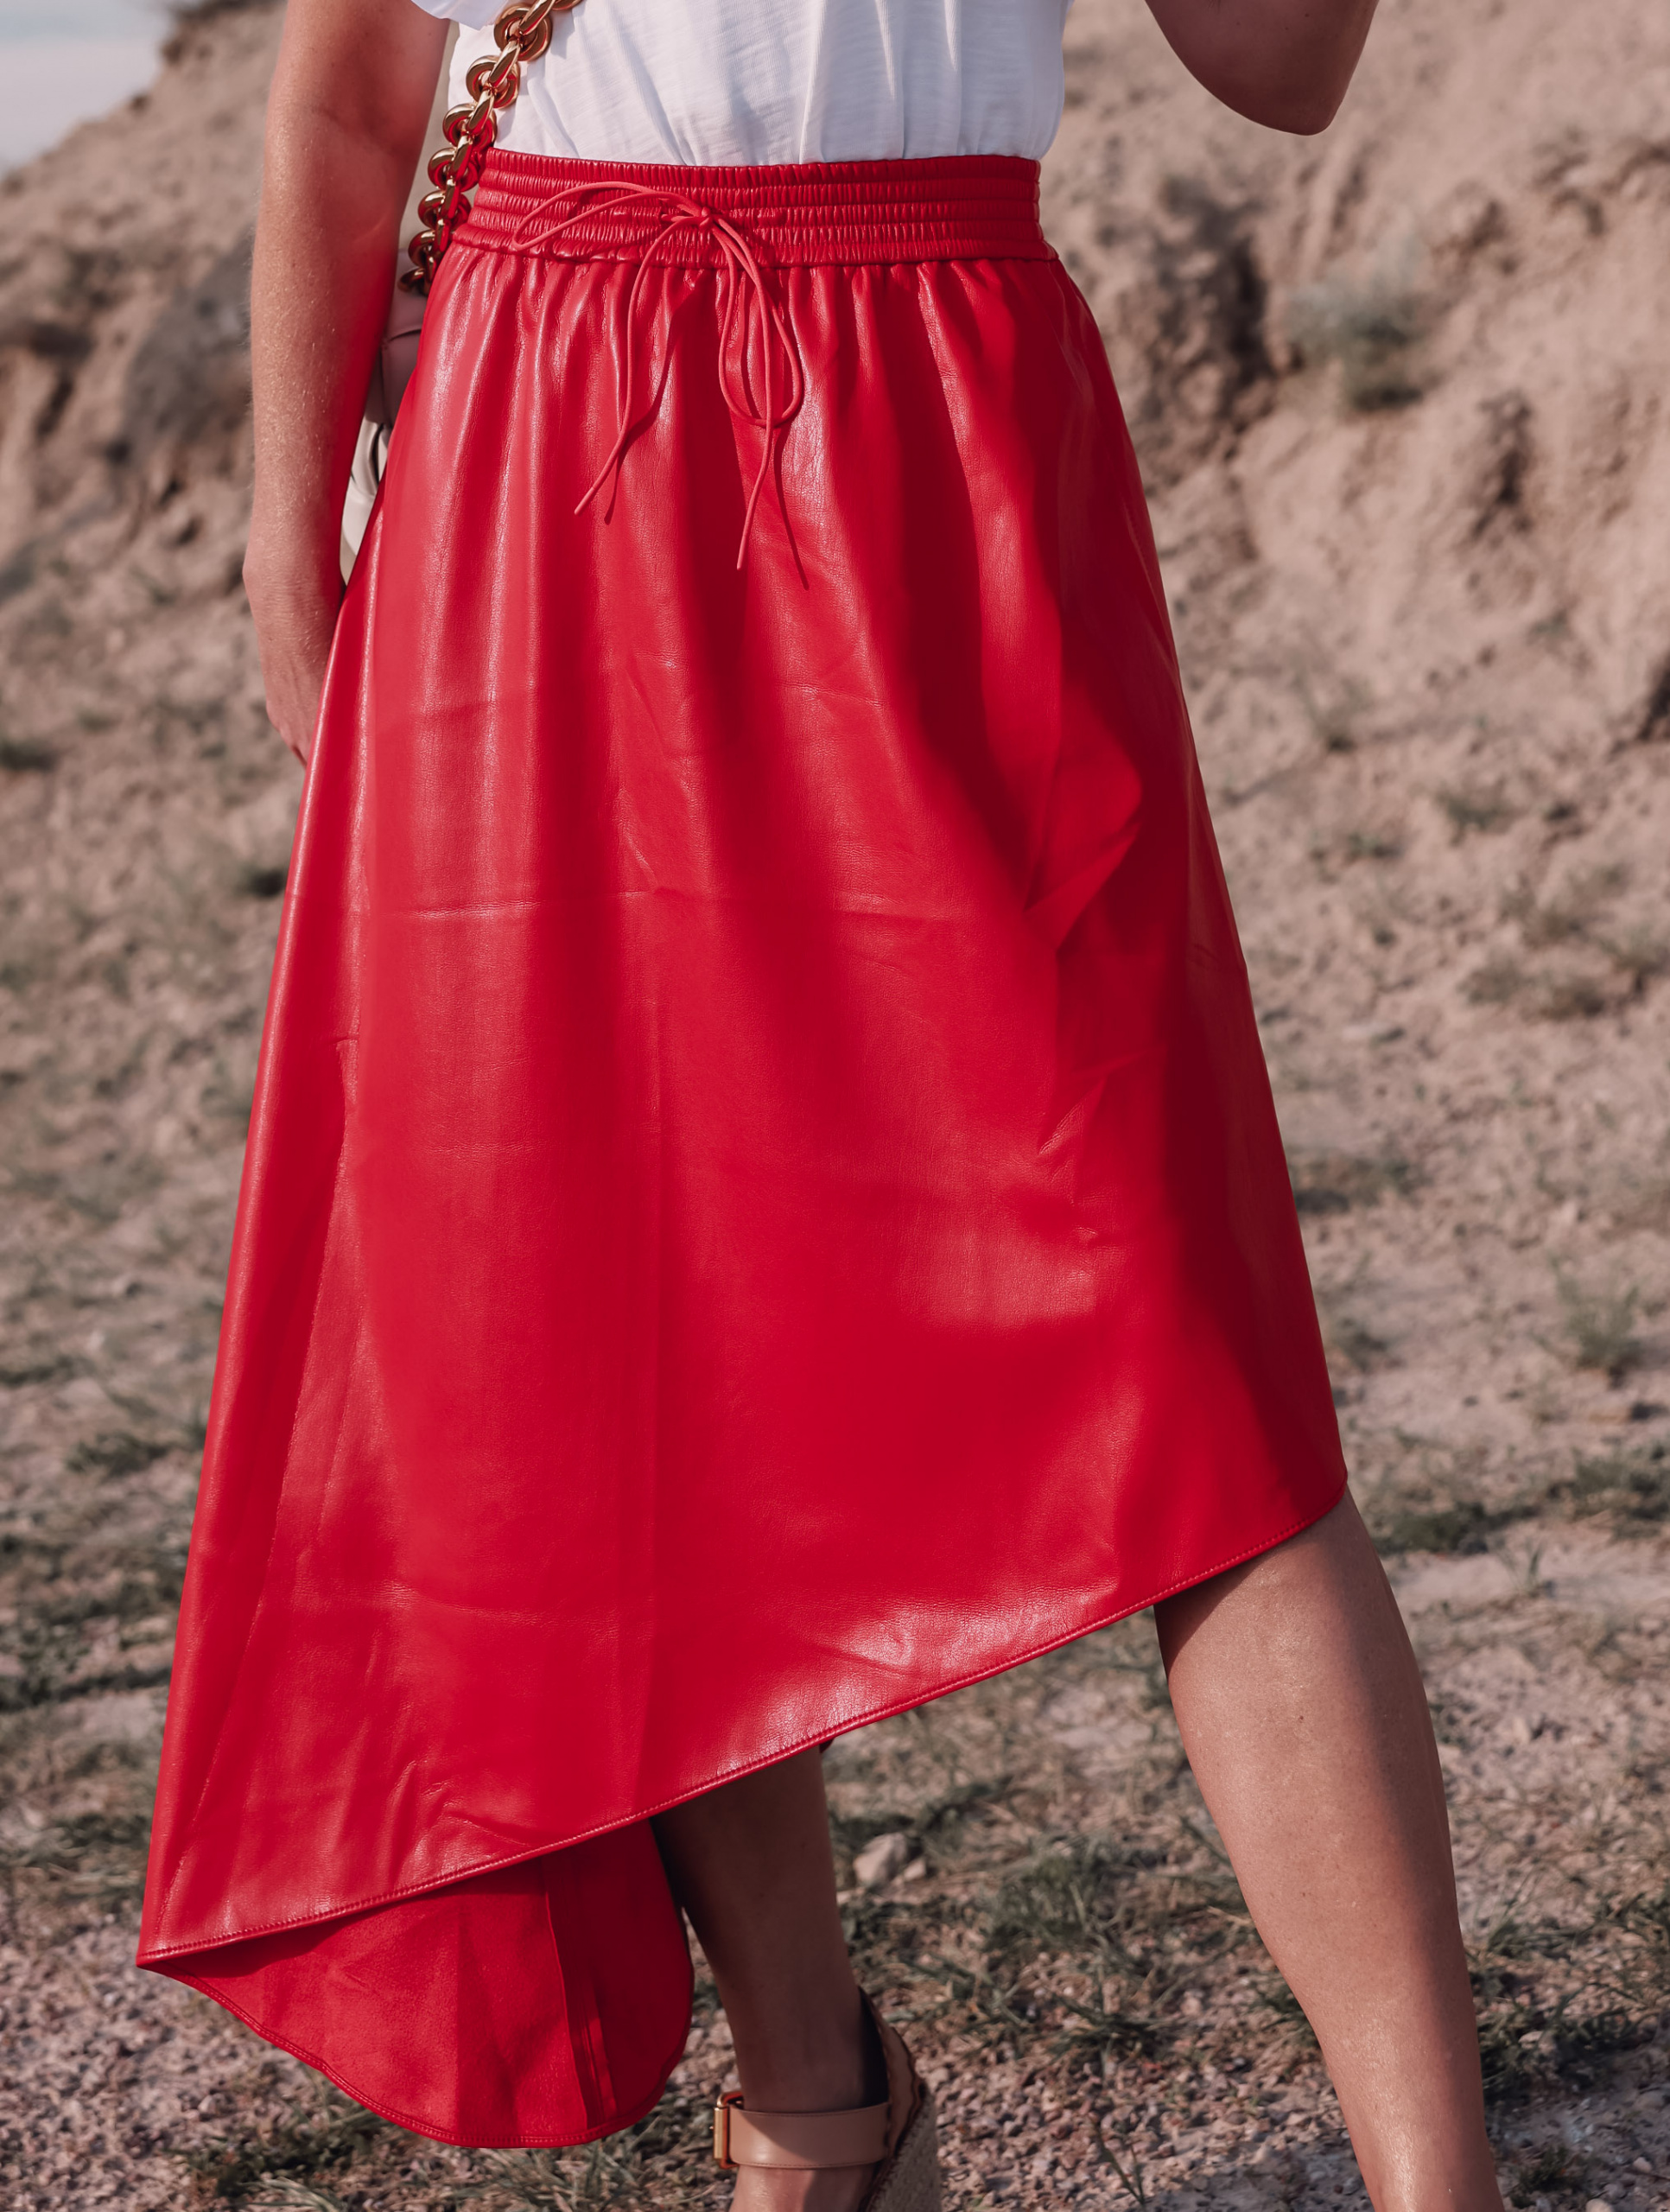 maxi skirts, maxi skirts over 40, printed pleatd maxi skirt, midi skirts over 40, how to wear midi skirts over 40, red alice + olivia midi asymmetrical skirt, erin busbee, how to wear maxi skirts, nation ltd ruffle sleeve tee, see by chloe wedges